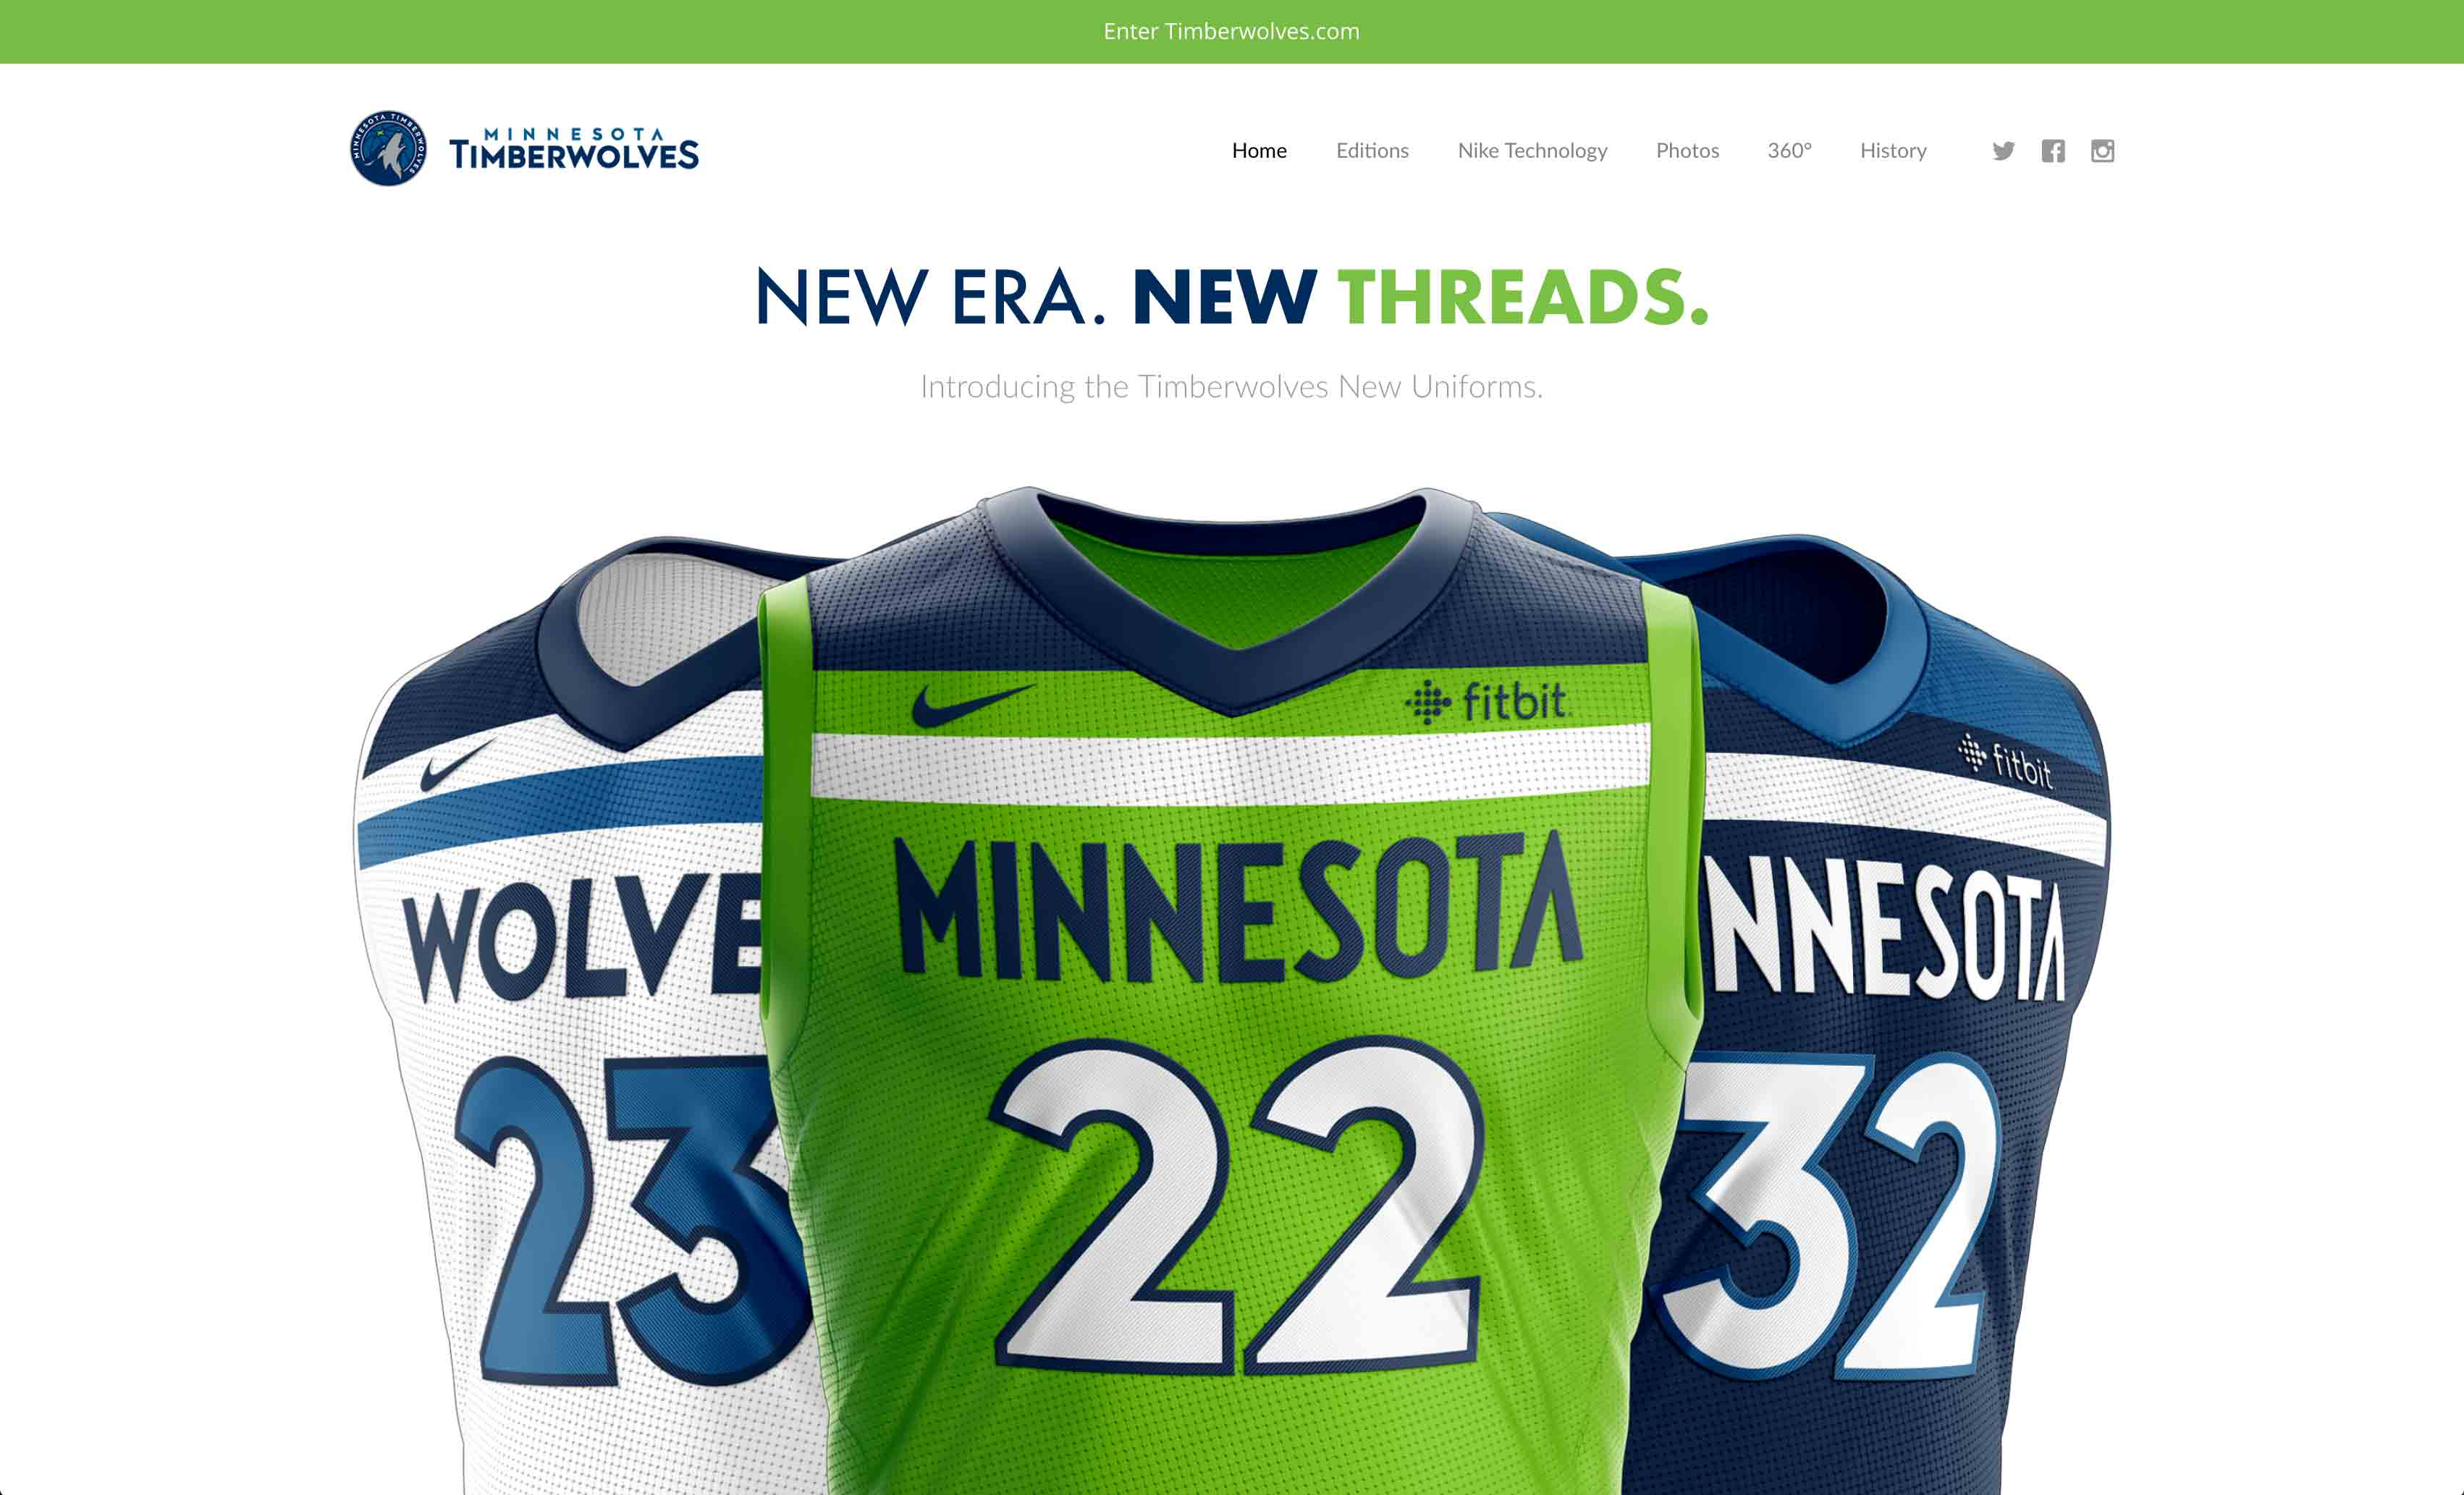 MN Timberwolves New Threads Project: Desktop View, Hero Section